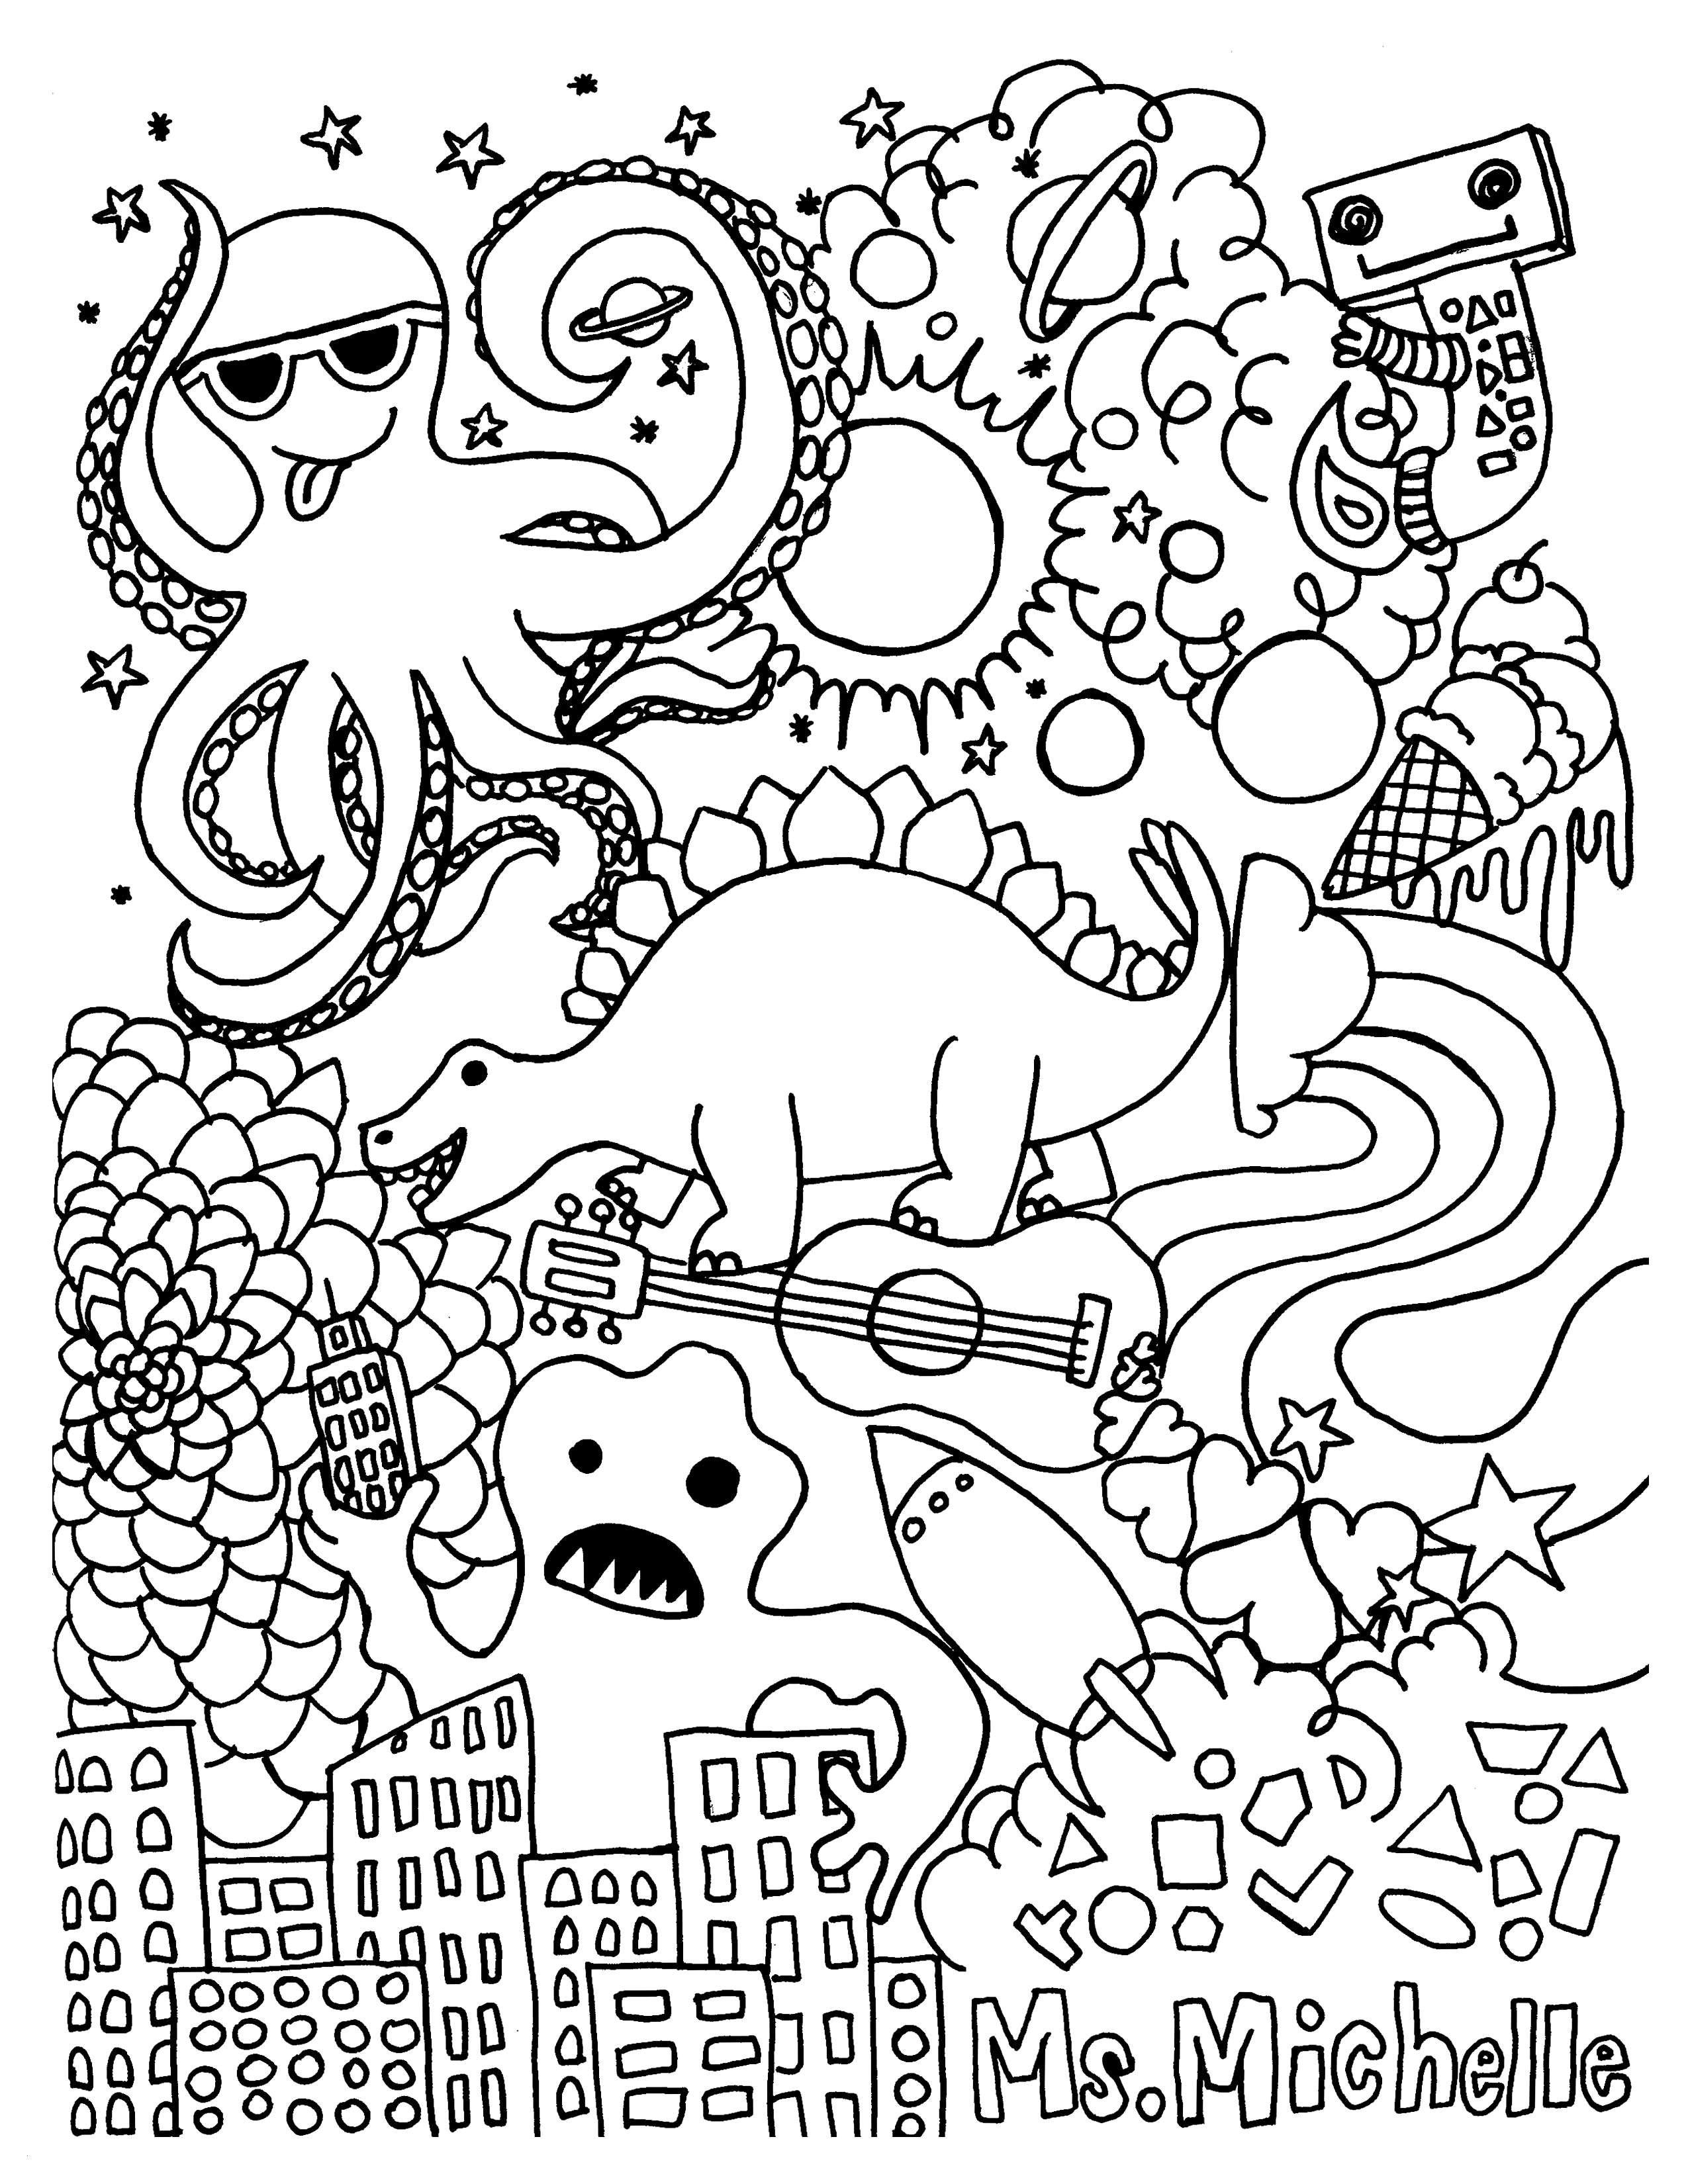 Panda Bear Coloring Pages Panda Bear Panda Bear What Do You See Coloring Pages Awesome Classic